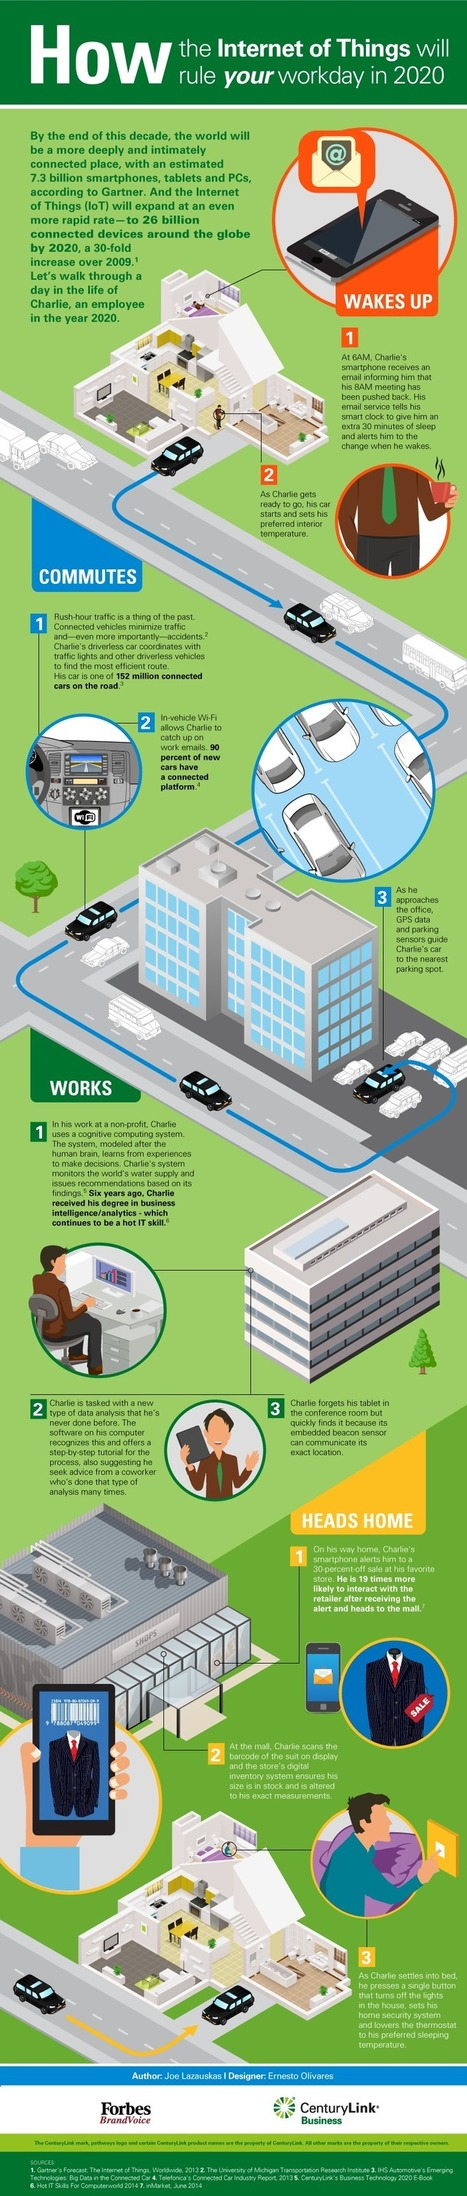 CenturyLinkVoice: How The Internet Of Things Will Rule Your Workday In 2020 [Infographic] | HR Scoops | Scoop.it